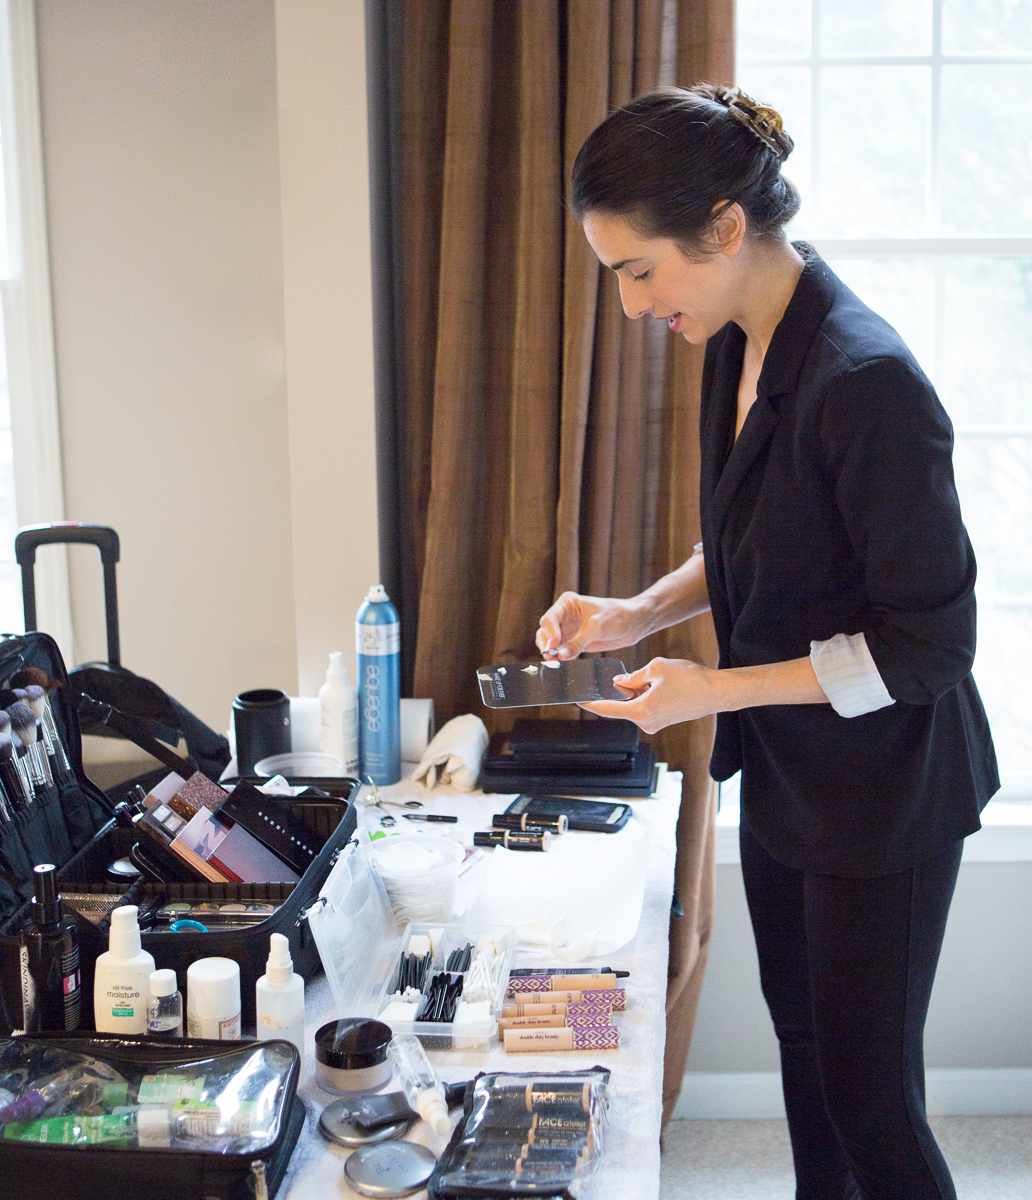 Makeup artist setting up tools and supplies before client session